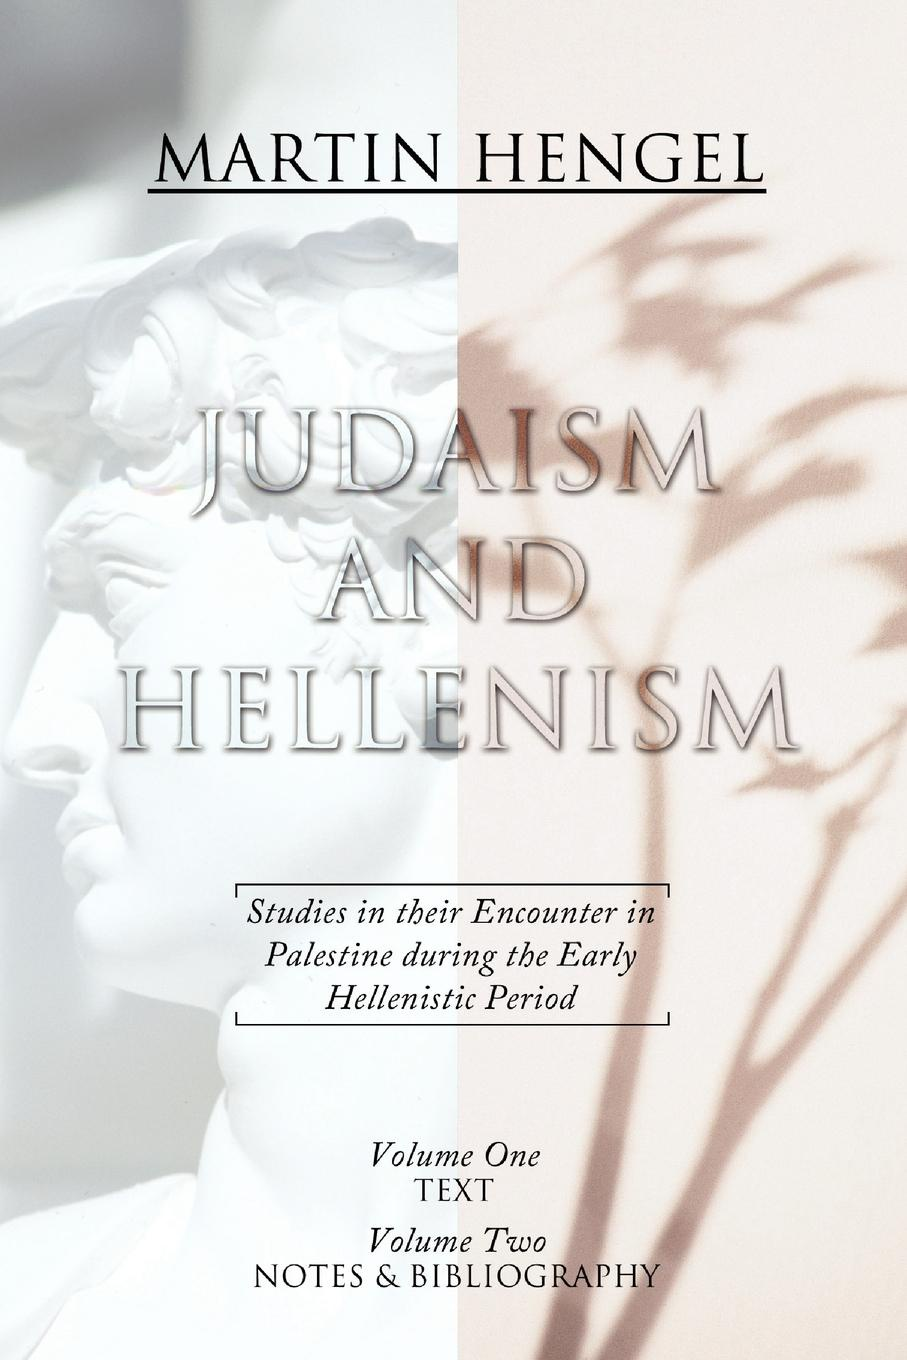 Martin Hengel Judaism and Hellenism. Studies in Their Encounter in Palestine During the Early Hellenistic Period